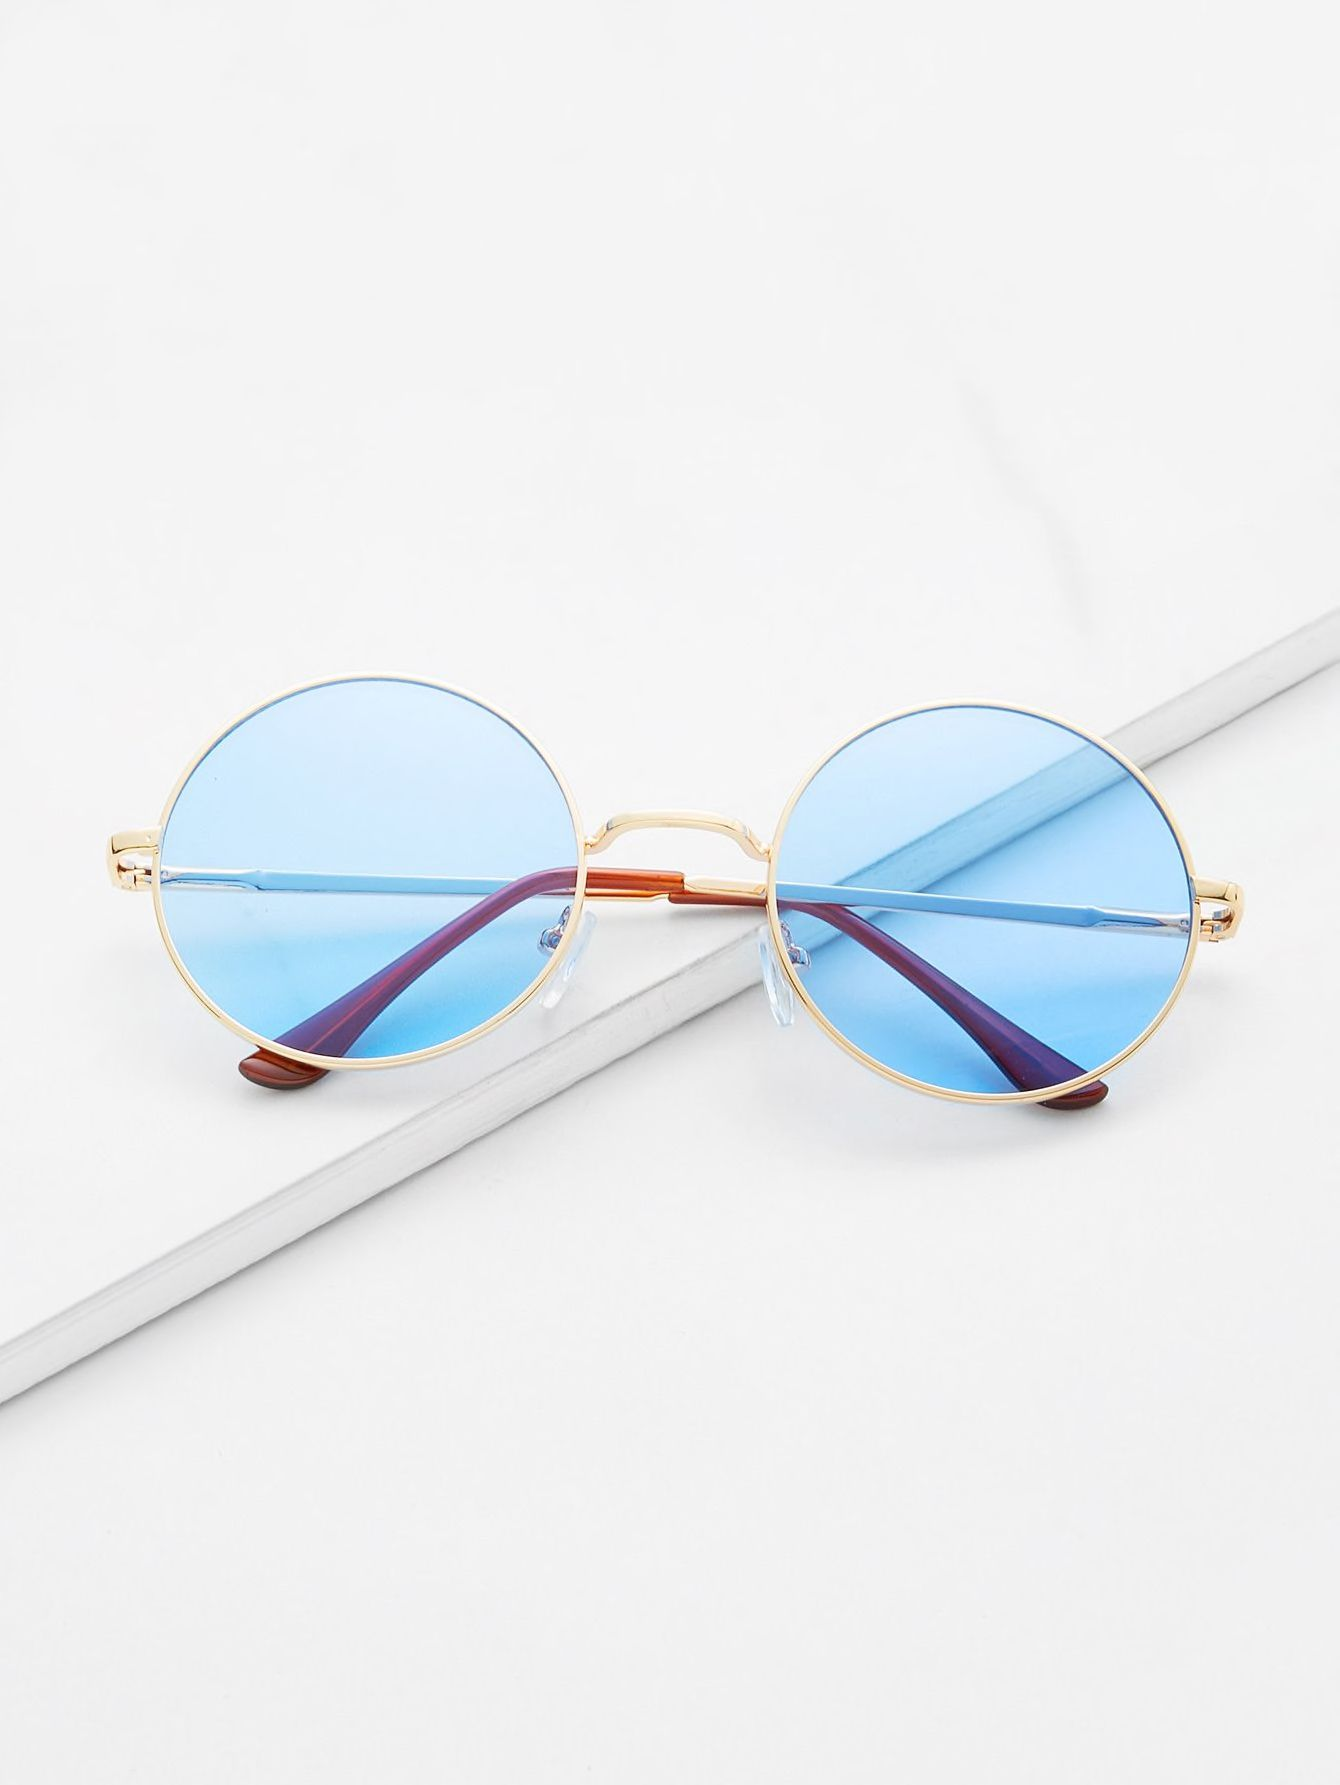 fd74299579 Gold Frame Light Blue Retro Style Round Sunglasses Check out this Gold Frame  Light Blue Retro Style Round Sunglasses on Shein and explore more to meet  your ...